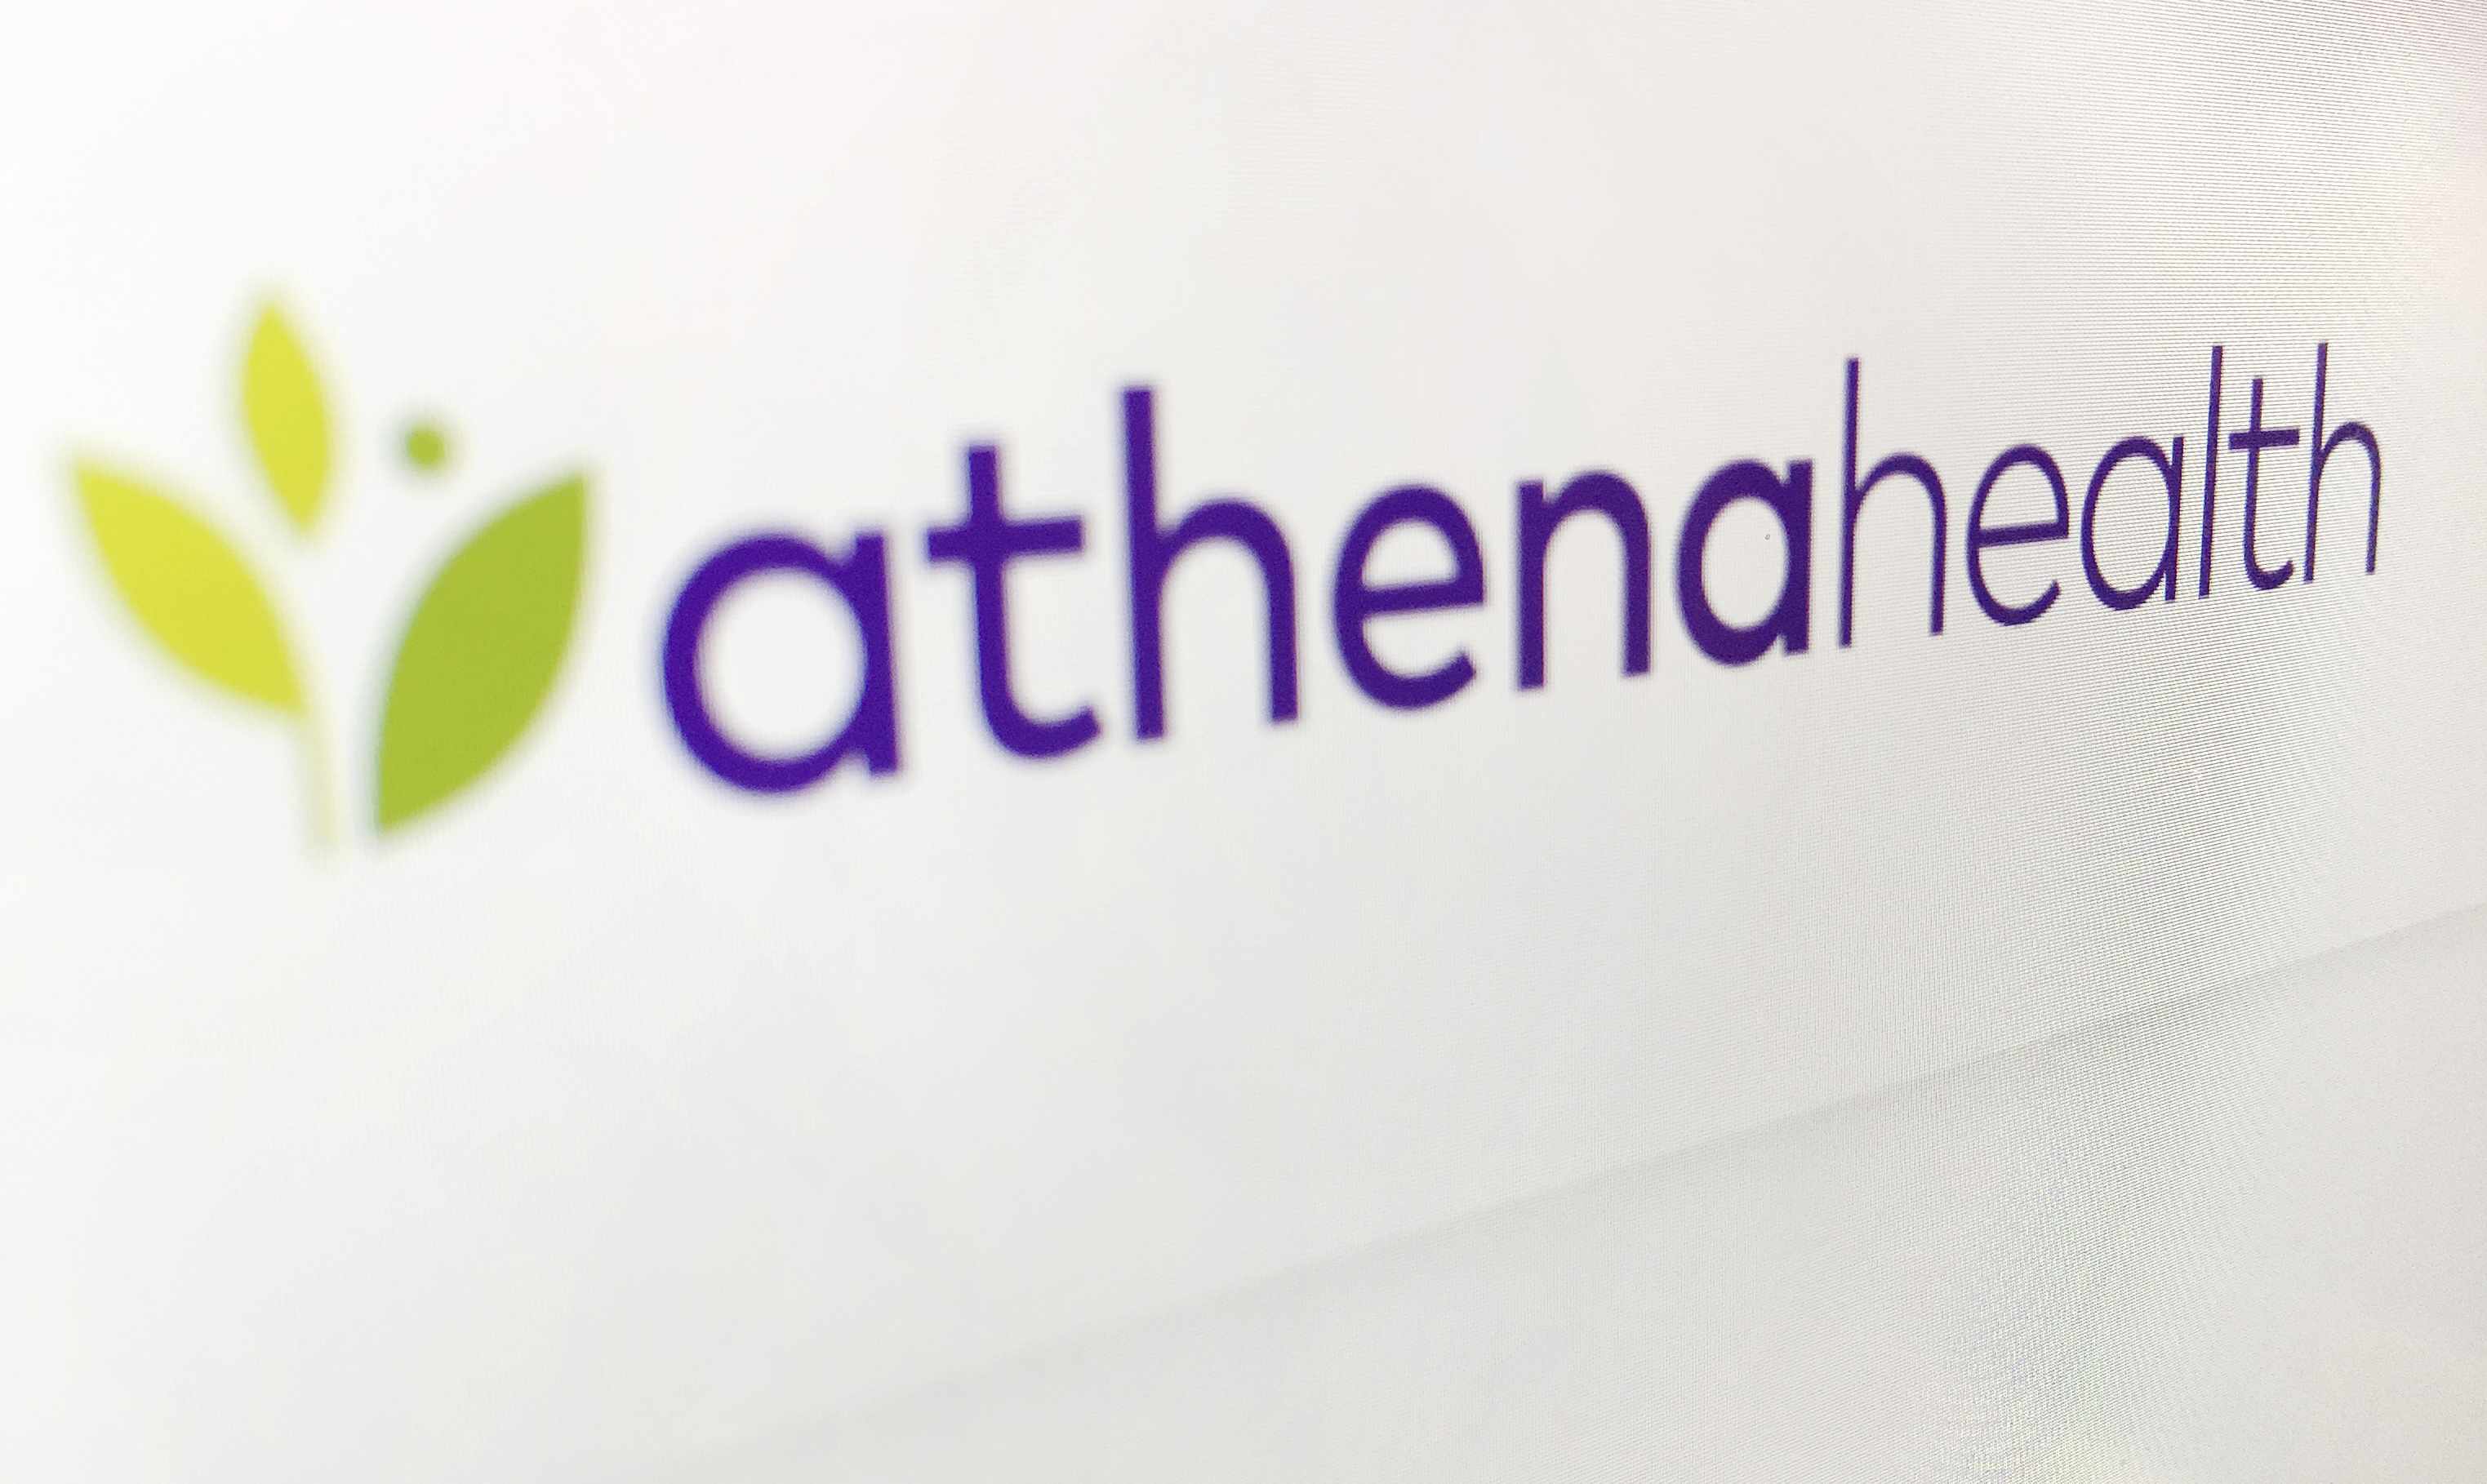 Athenahealth to be acquired, combined with former GE Healthcare